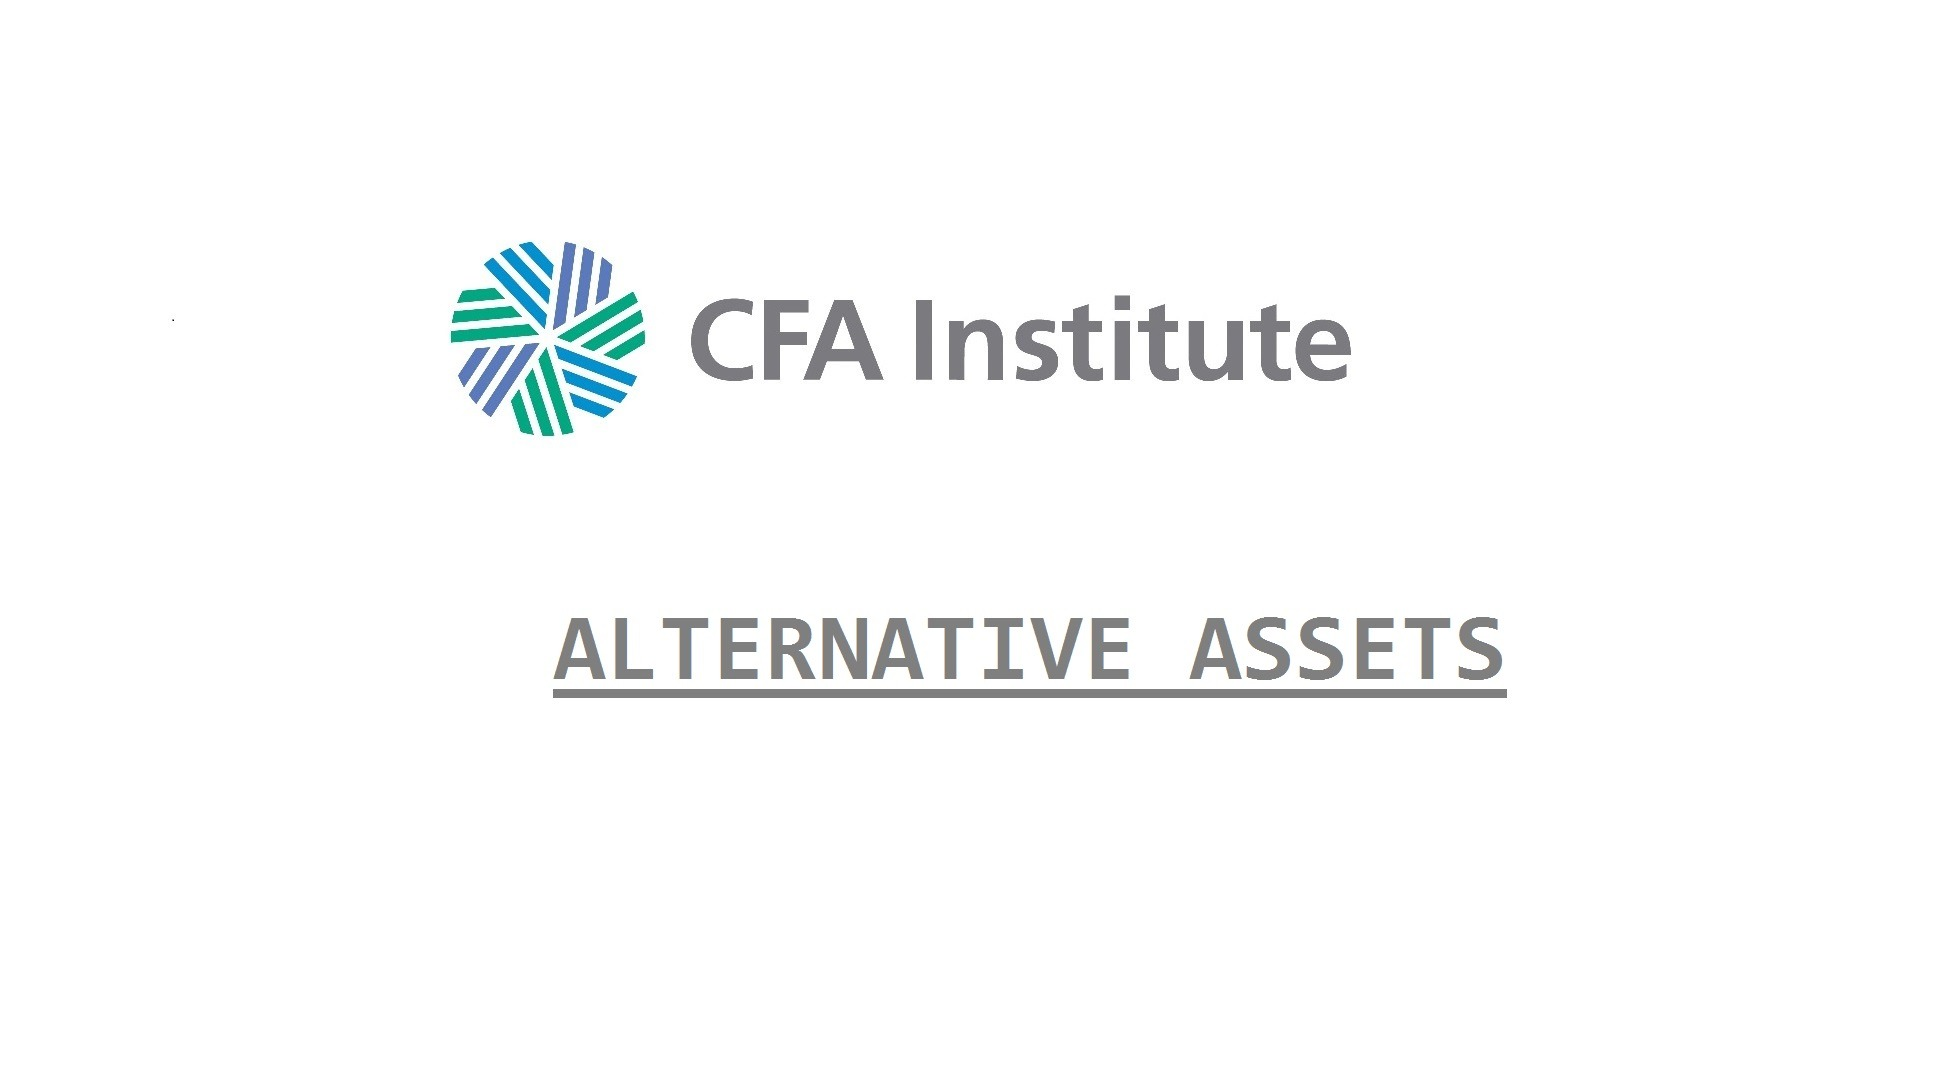 cfa alternative assets